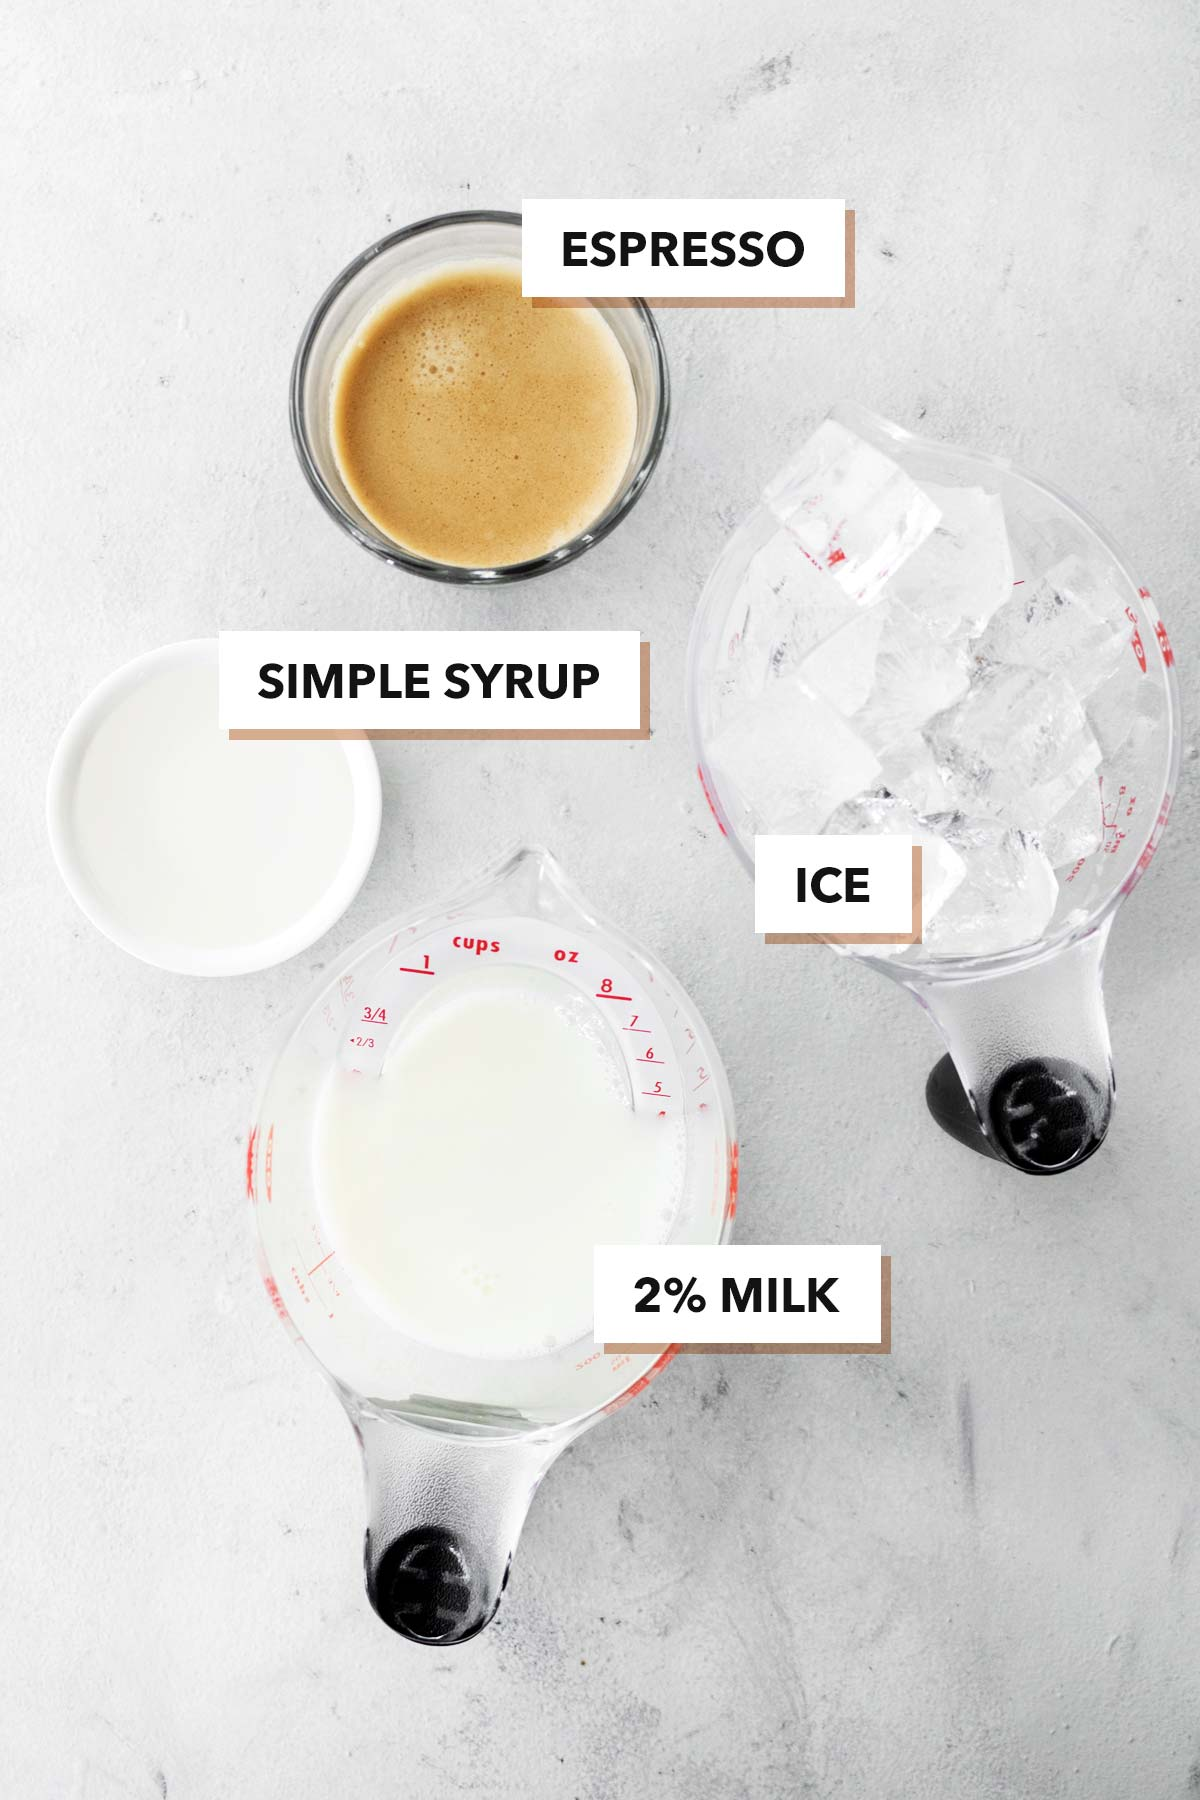 Starbucks Iced Shaken Espresso copycat drink ingredients.